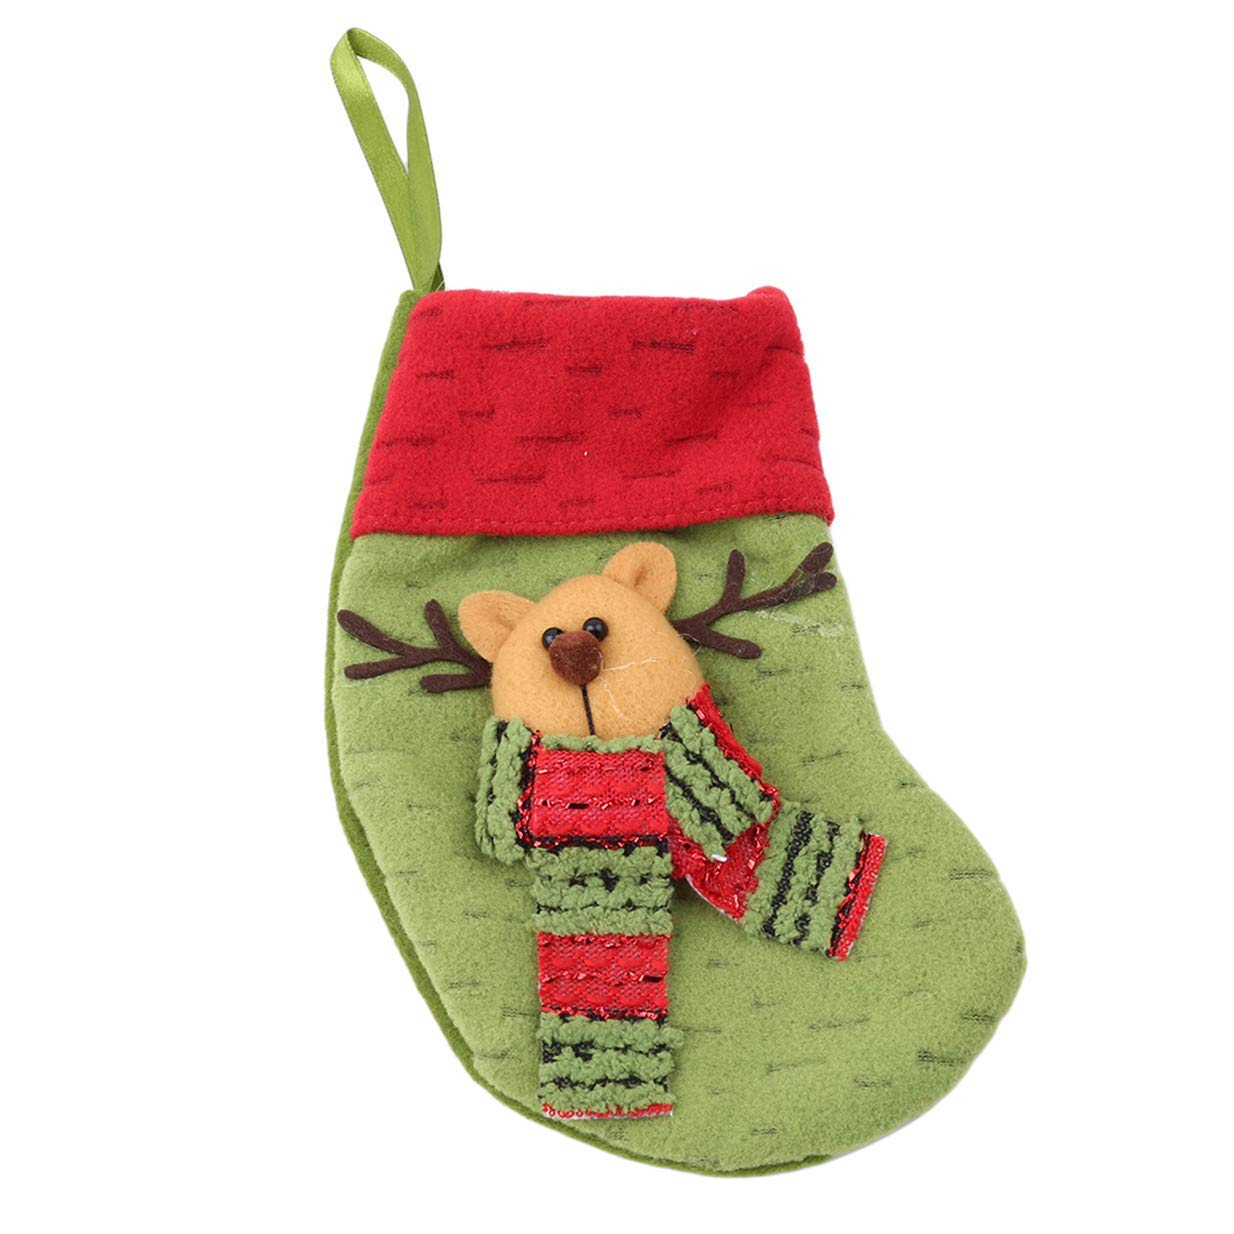 Tcplyn Premium 3D Pattern Christmas Socks Shape Pendant Hanging Gift Bags Home Supplies DecorGreen Deer